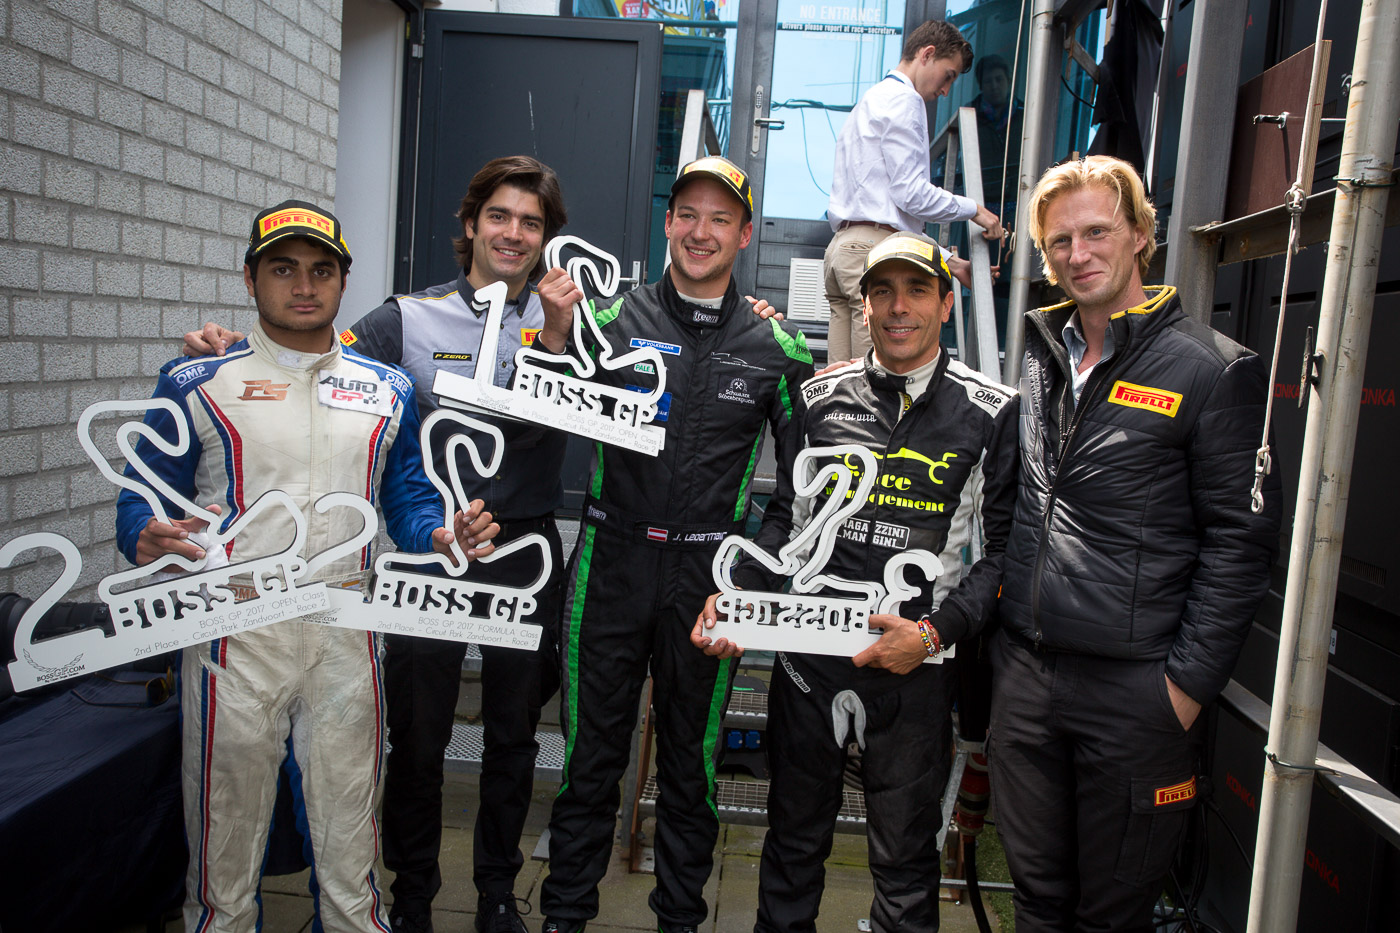 Podium of season race 4 in Zandvoort 2017 and partner PIRELLI.